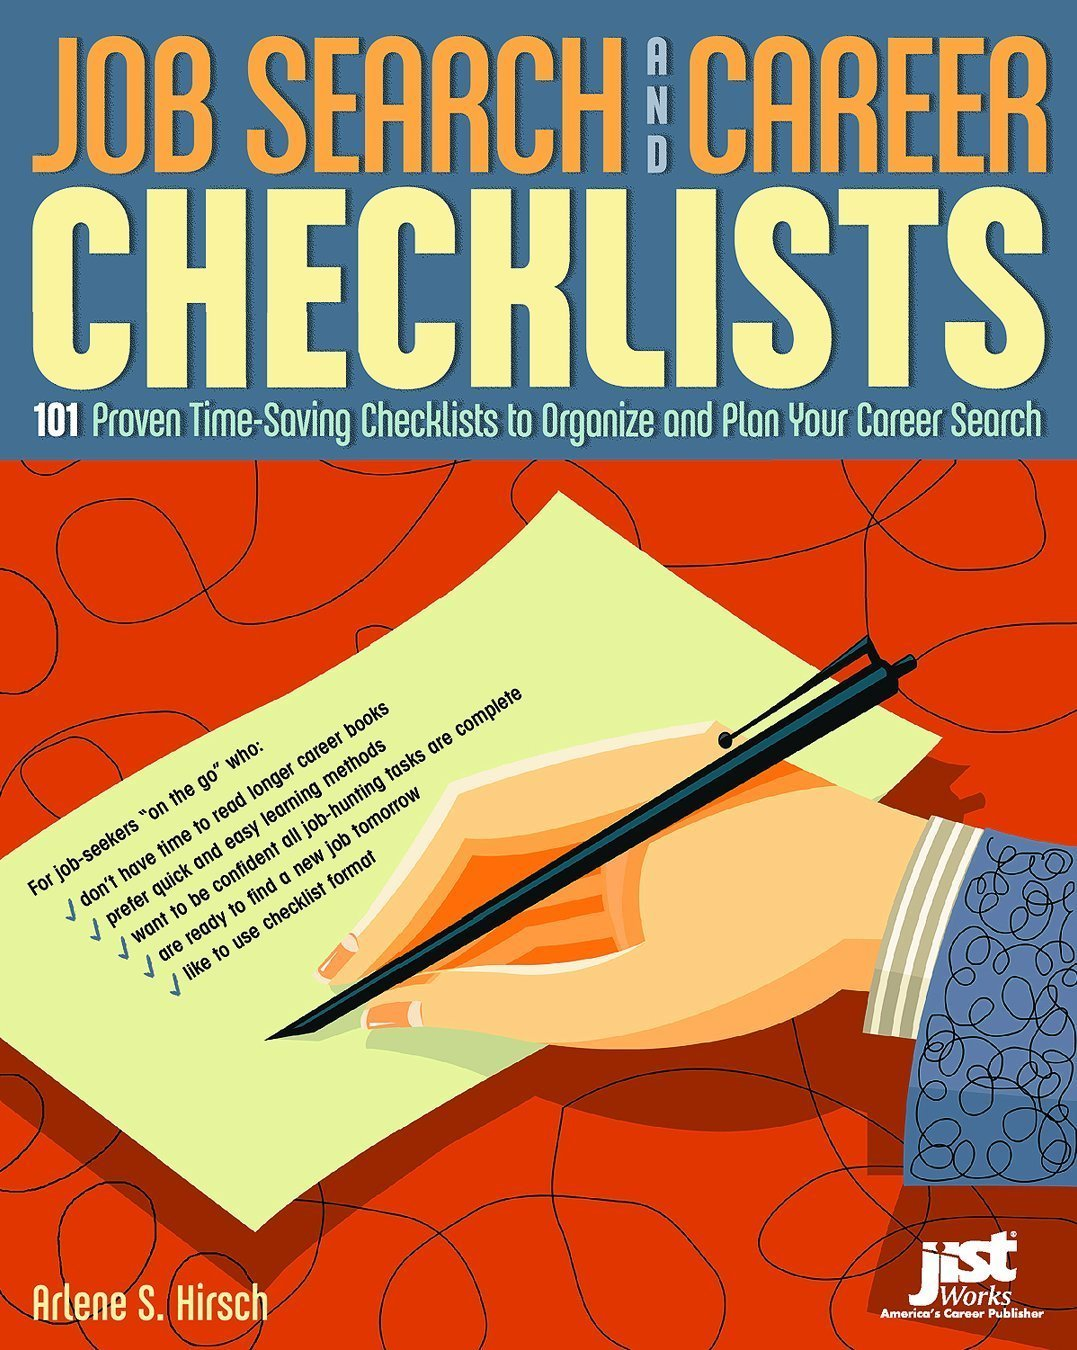 job search and career checklists 101 proven time saving job search and career checklists 101 proven time saving checklists to organize and plan your career search arlene s hirsch 9781593571184 amazon com